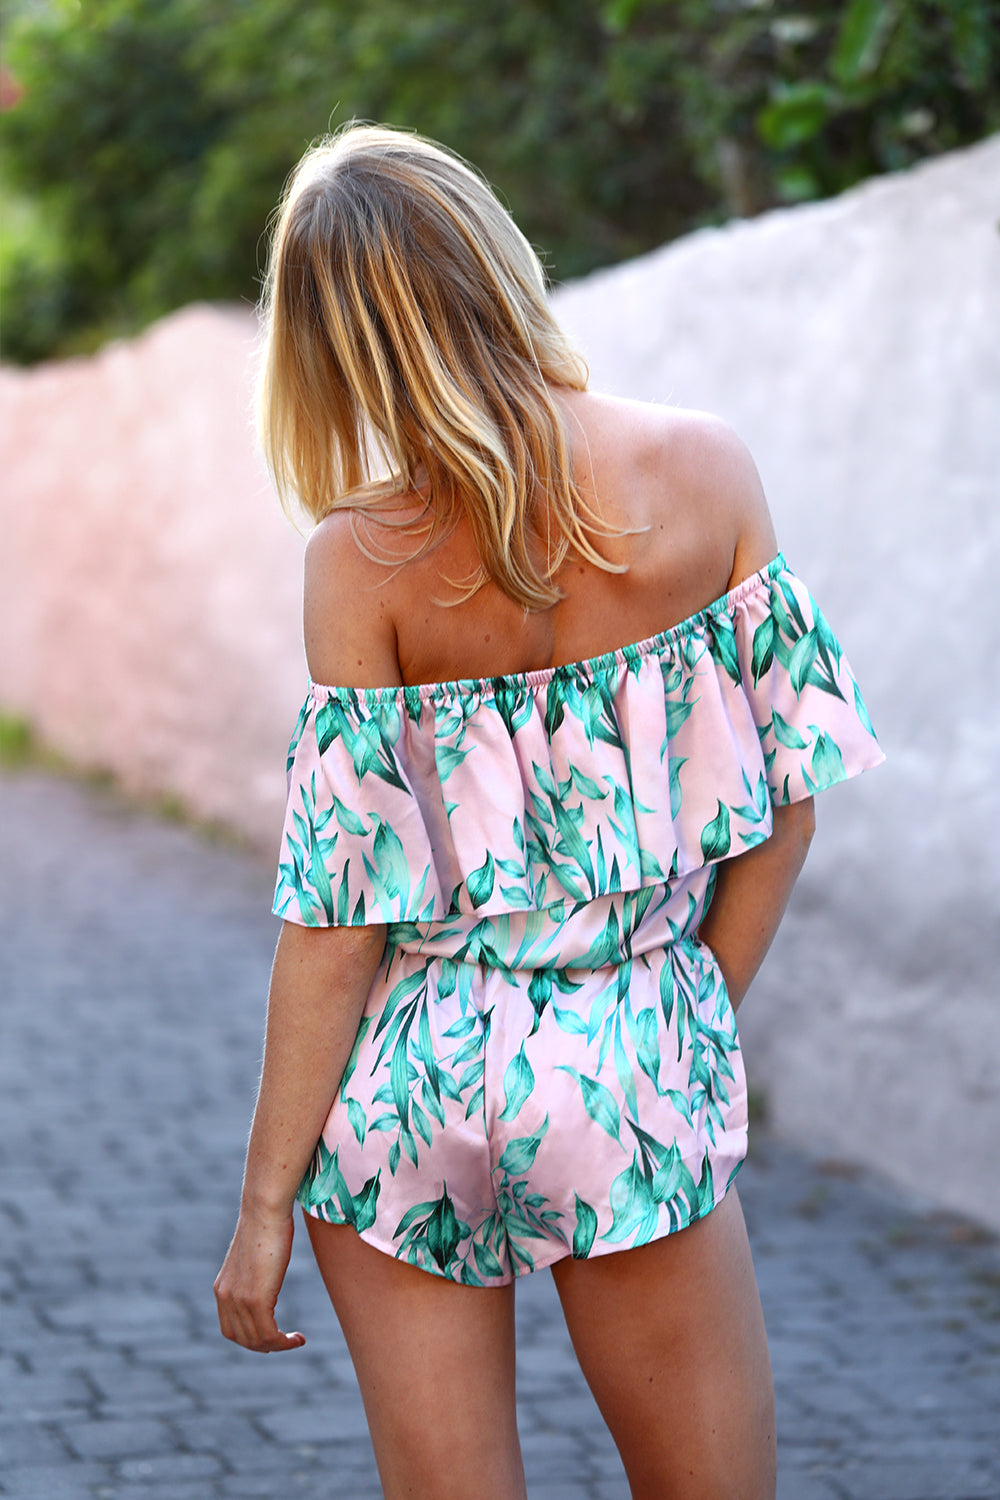 HAMEC Bermuda Off the Shoulder  Ruffle Crop Top in Tropical Print in Blush Background with Mint Green Leaves